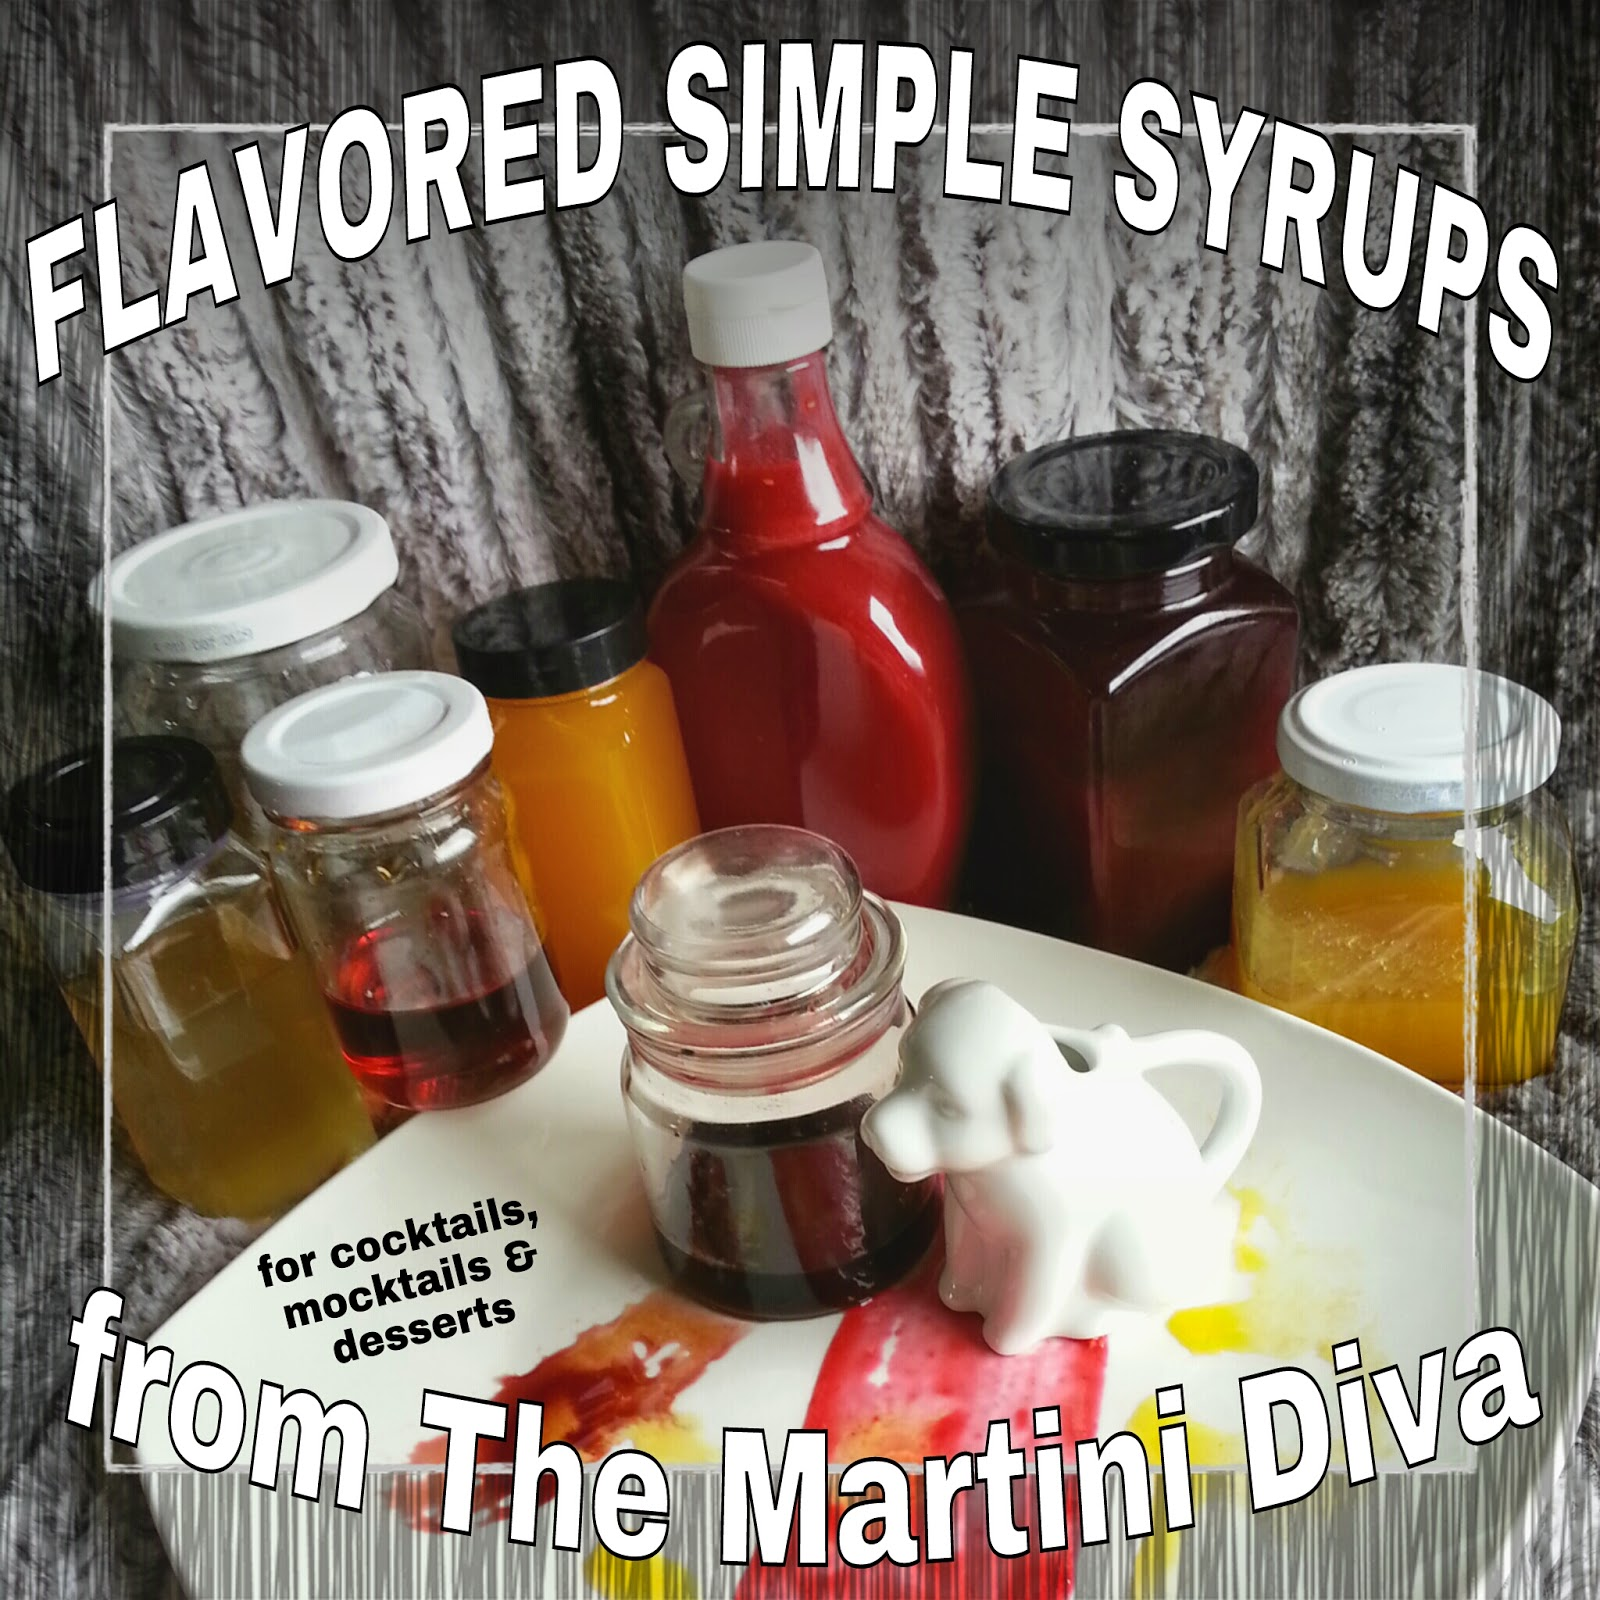 The martini diva flavored simple syrup recipes instructions for How to make flavored martinis